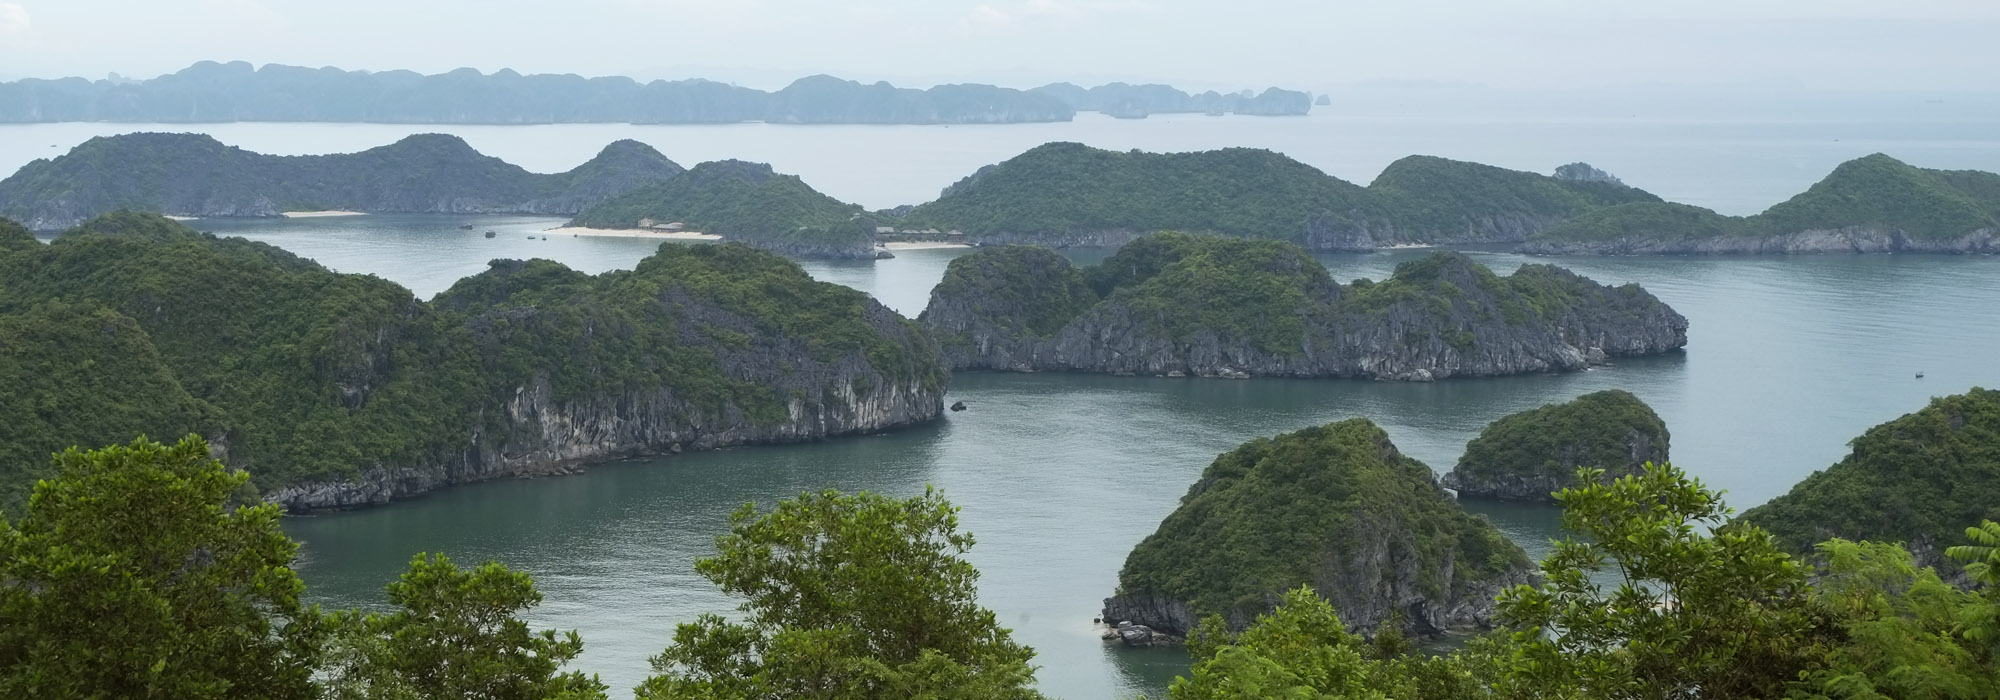 reise-ansichten ha long